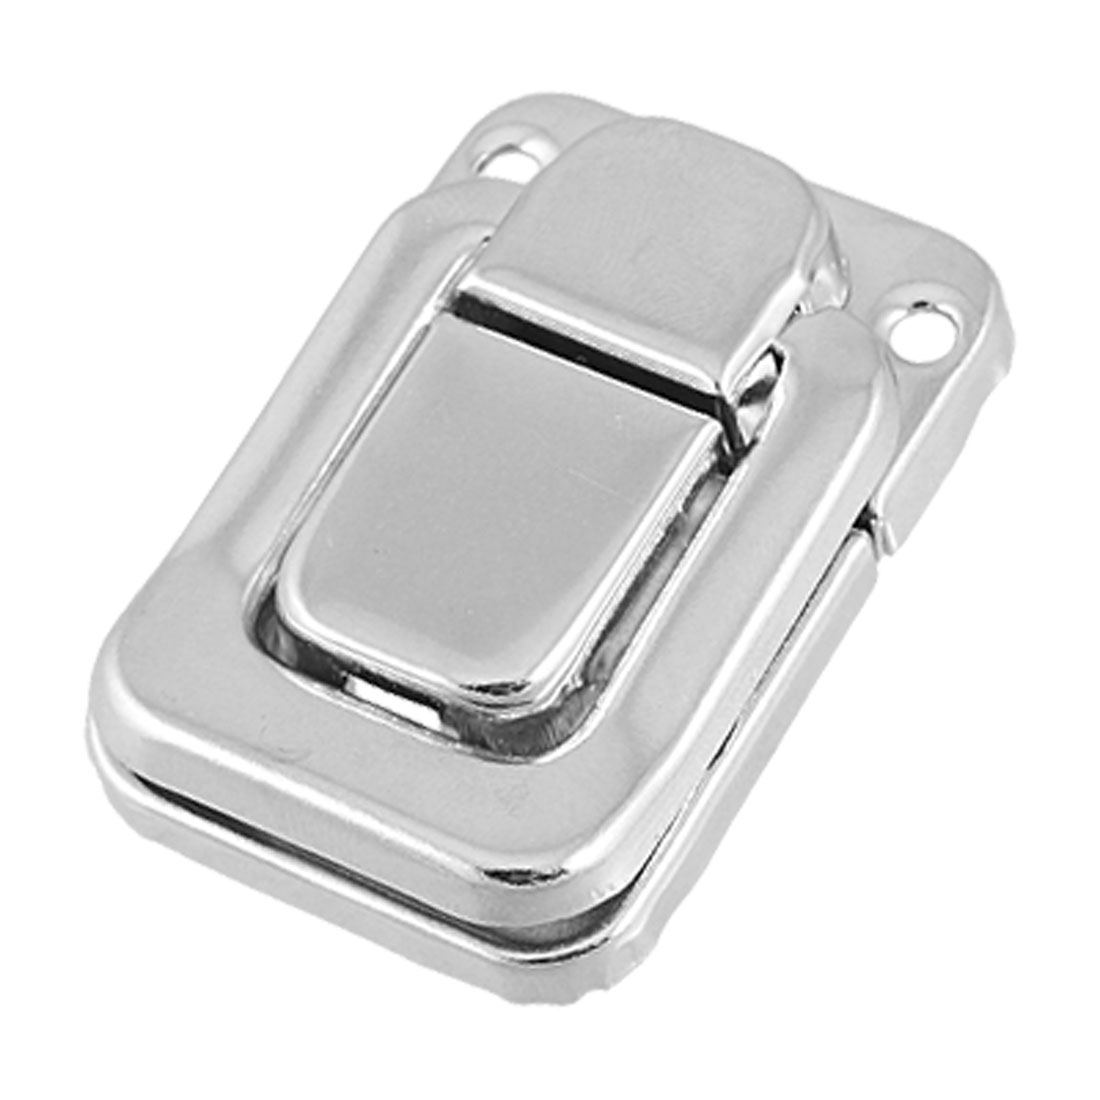 Silver Tone Metal Spring Loaded Cases Boxes Chest Toggle Catch Lacth